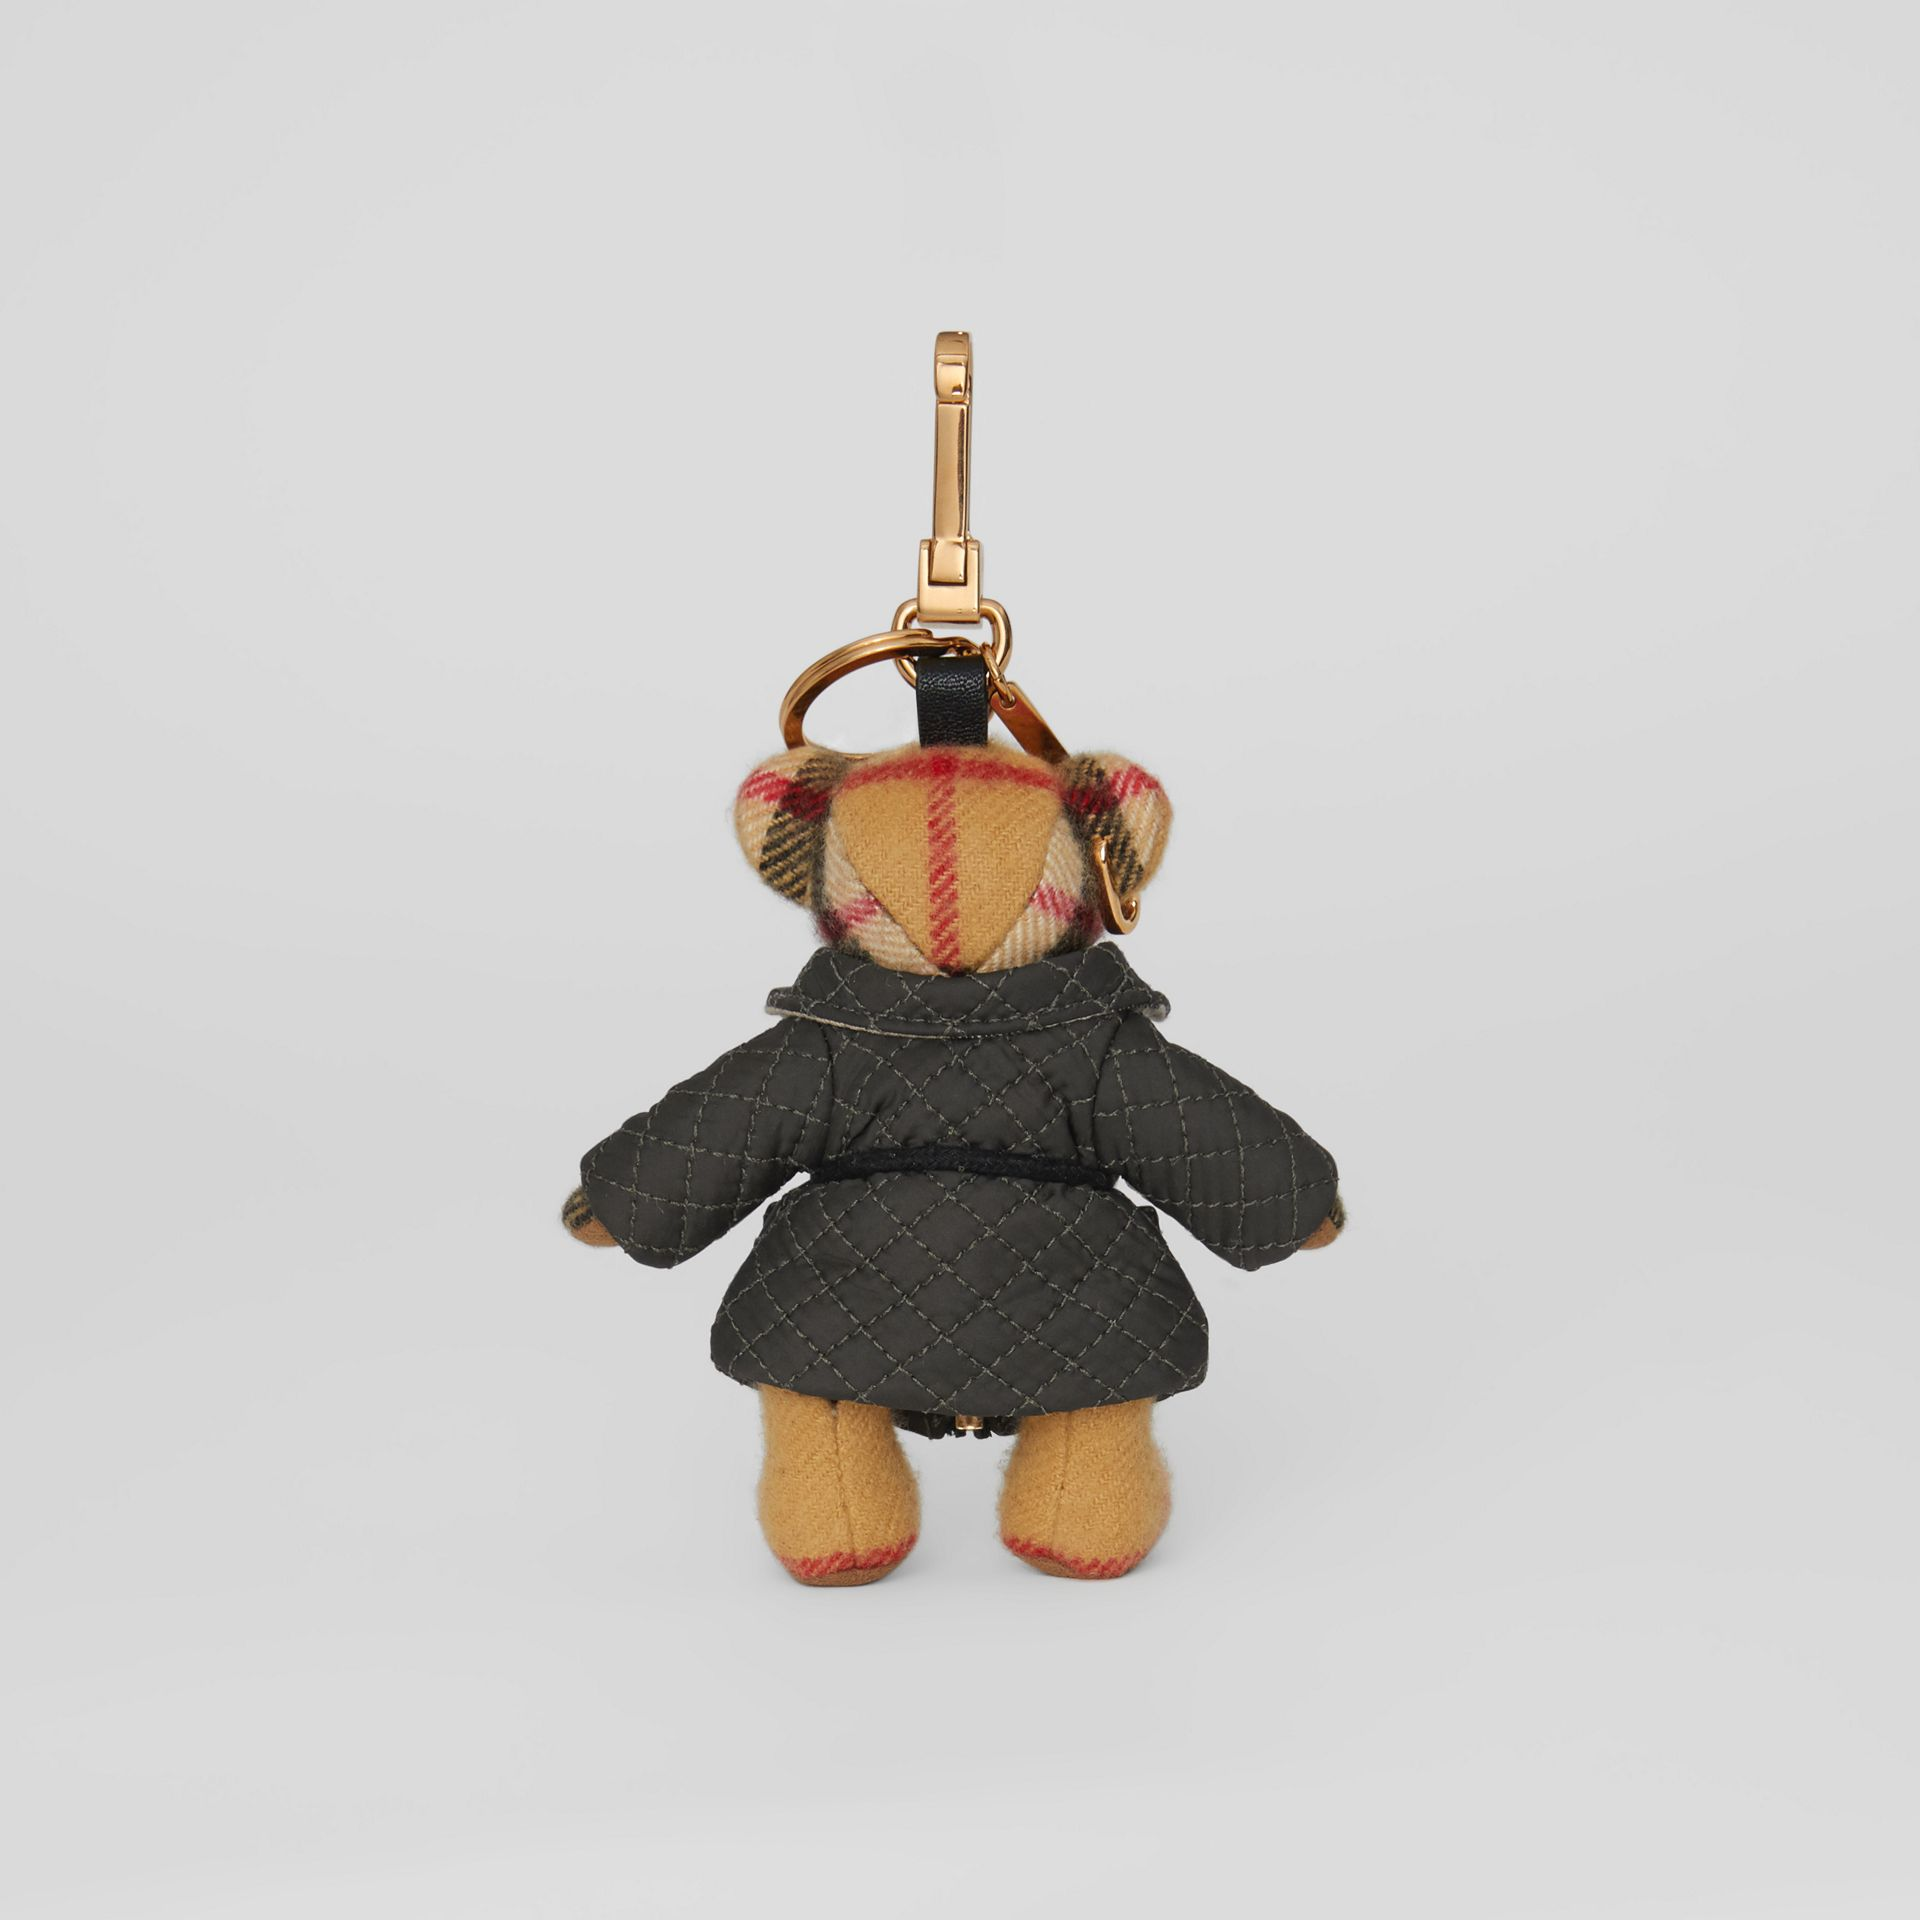 Bijou porte-clés Thomas Bear avec veste matelassée (Jaune Antique) | Burberry - photo de la galerie 3